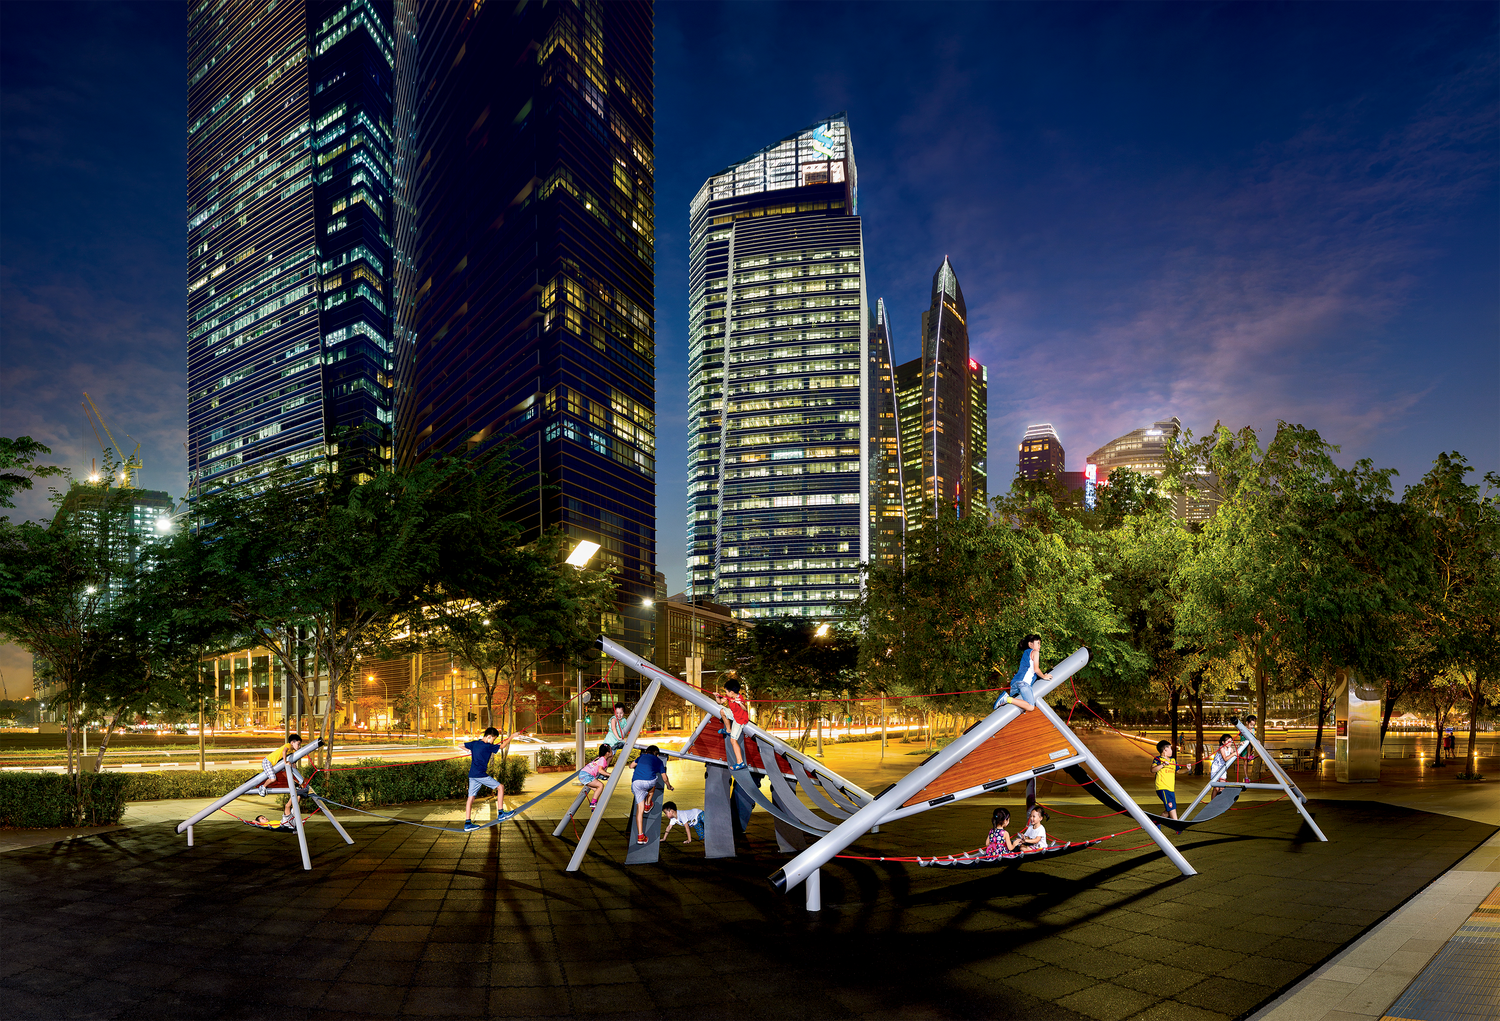 rsz_photo__playform_7_location_singapore_night